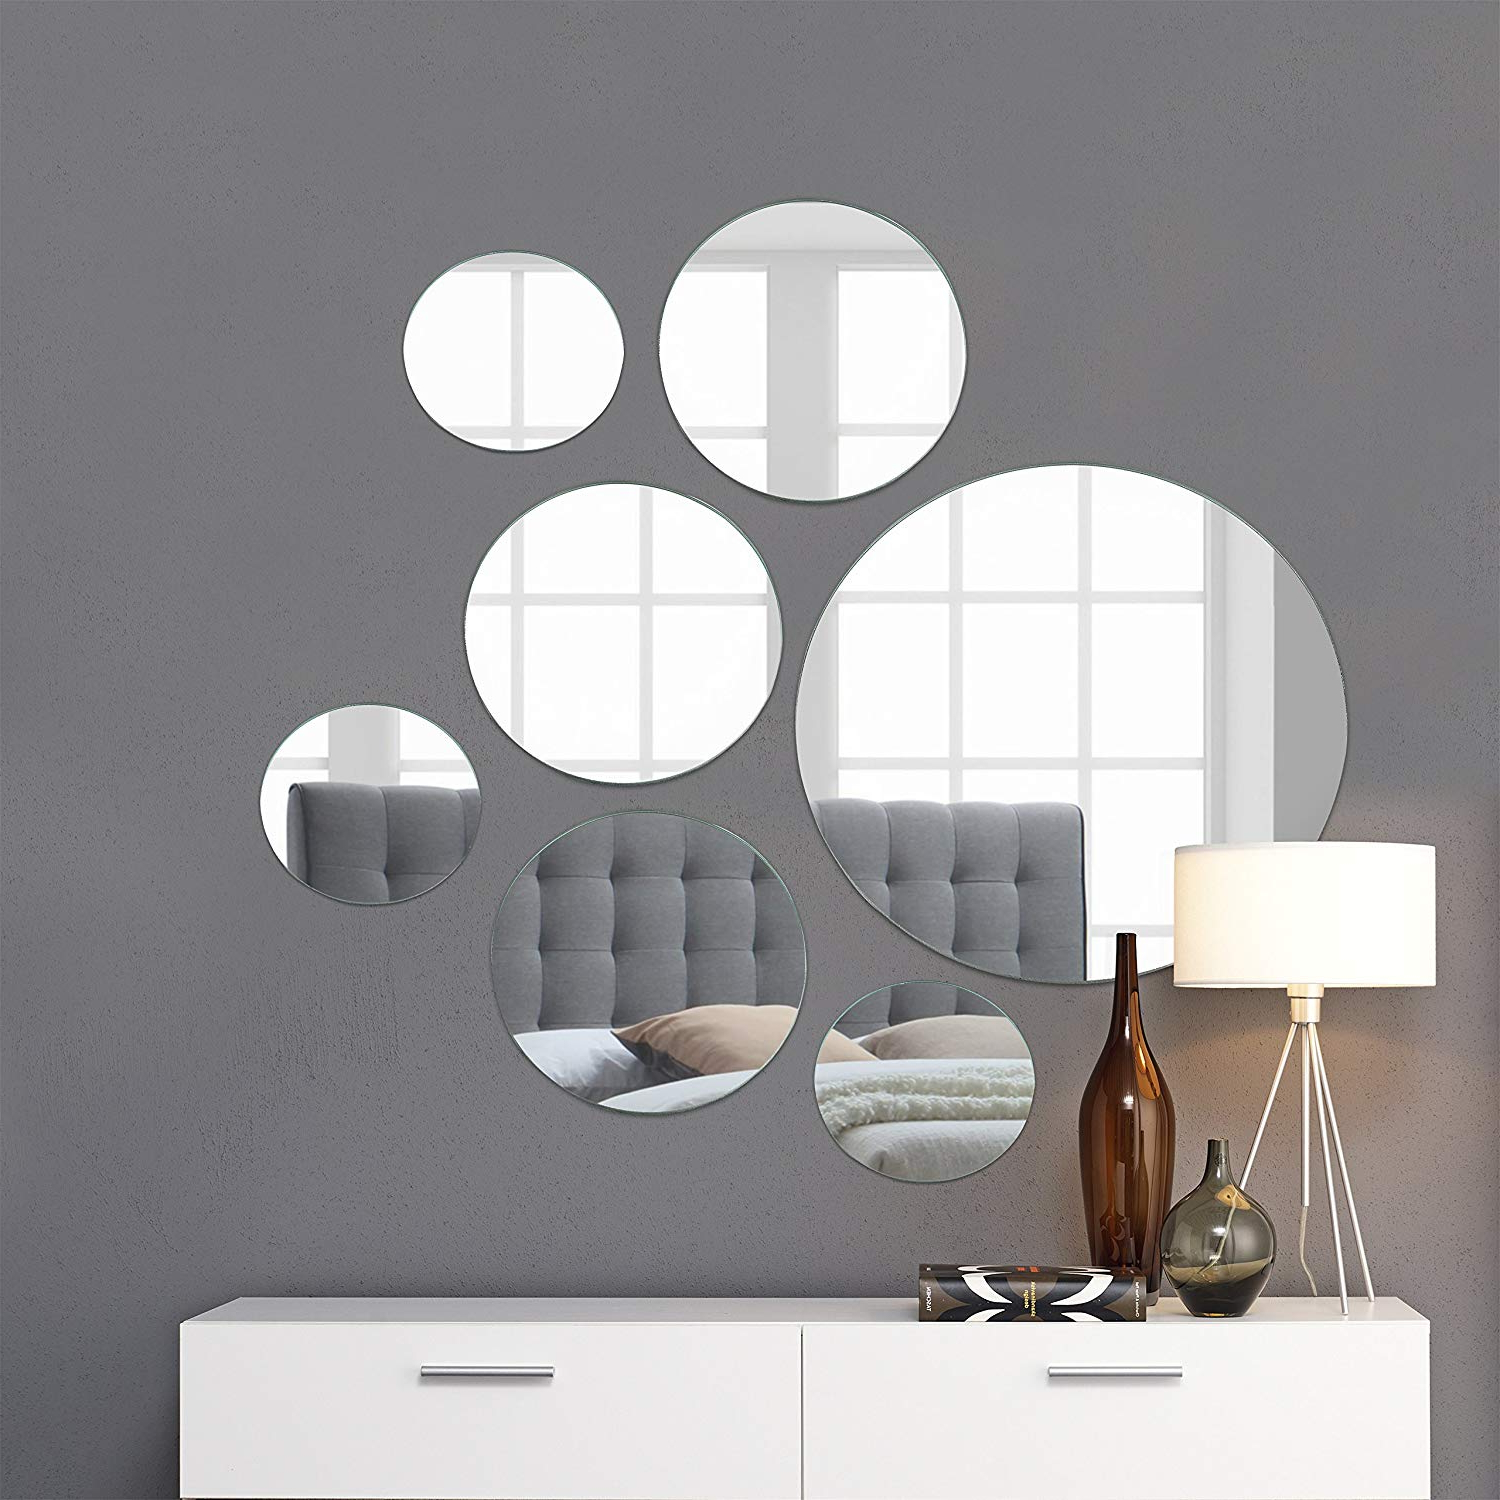 "Famous Mirrored Wall Mirrors With Light In The Dark Medium Round Mirror Wall Mounted Assorted Sizes (1X10"",  3X7"", 3X4"") – Set Of 7 Round Glass Mirrors Wall Decoration For Living Room, (View 6 of 20)"